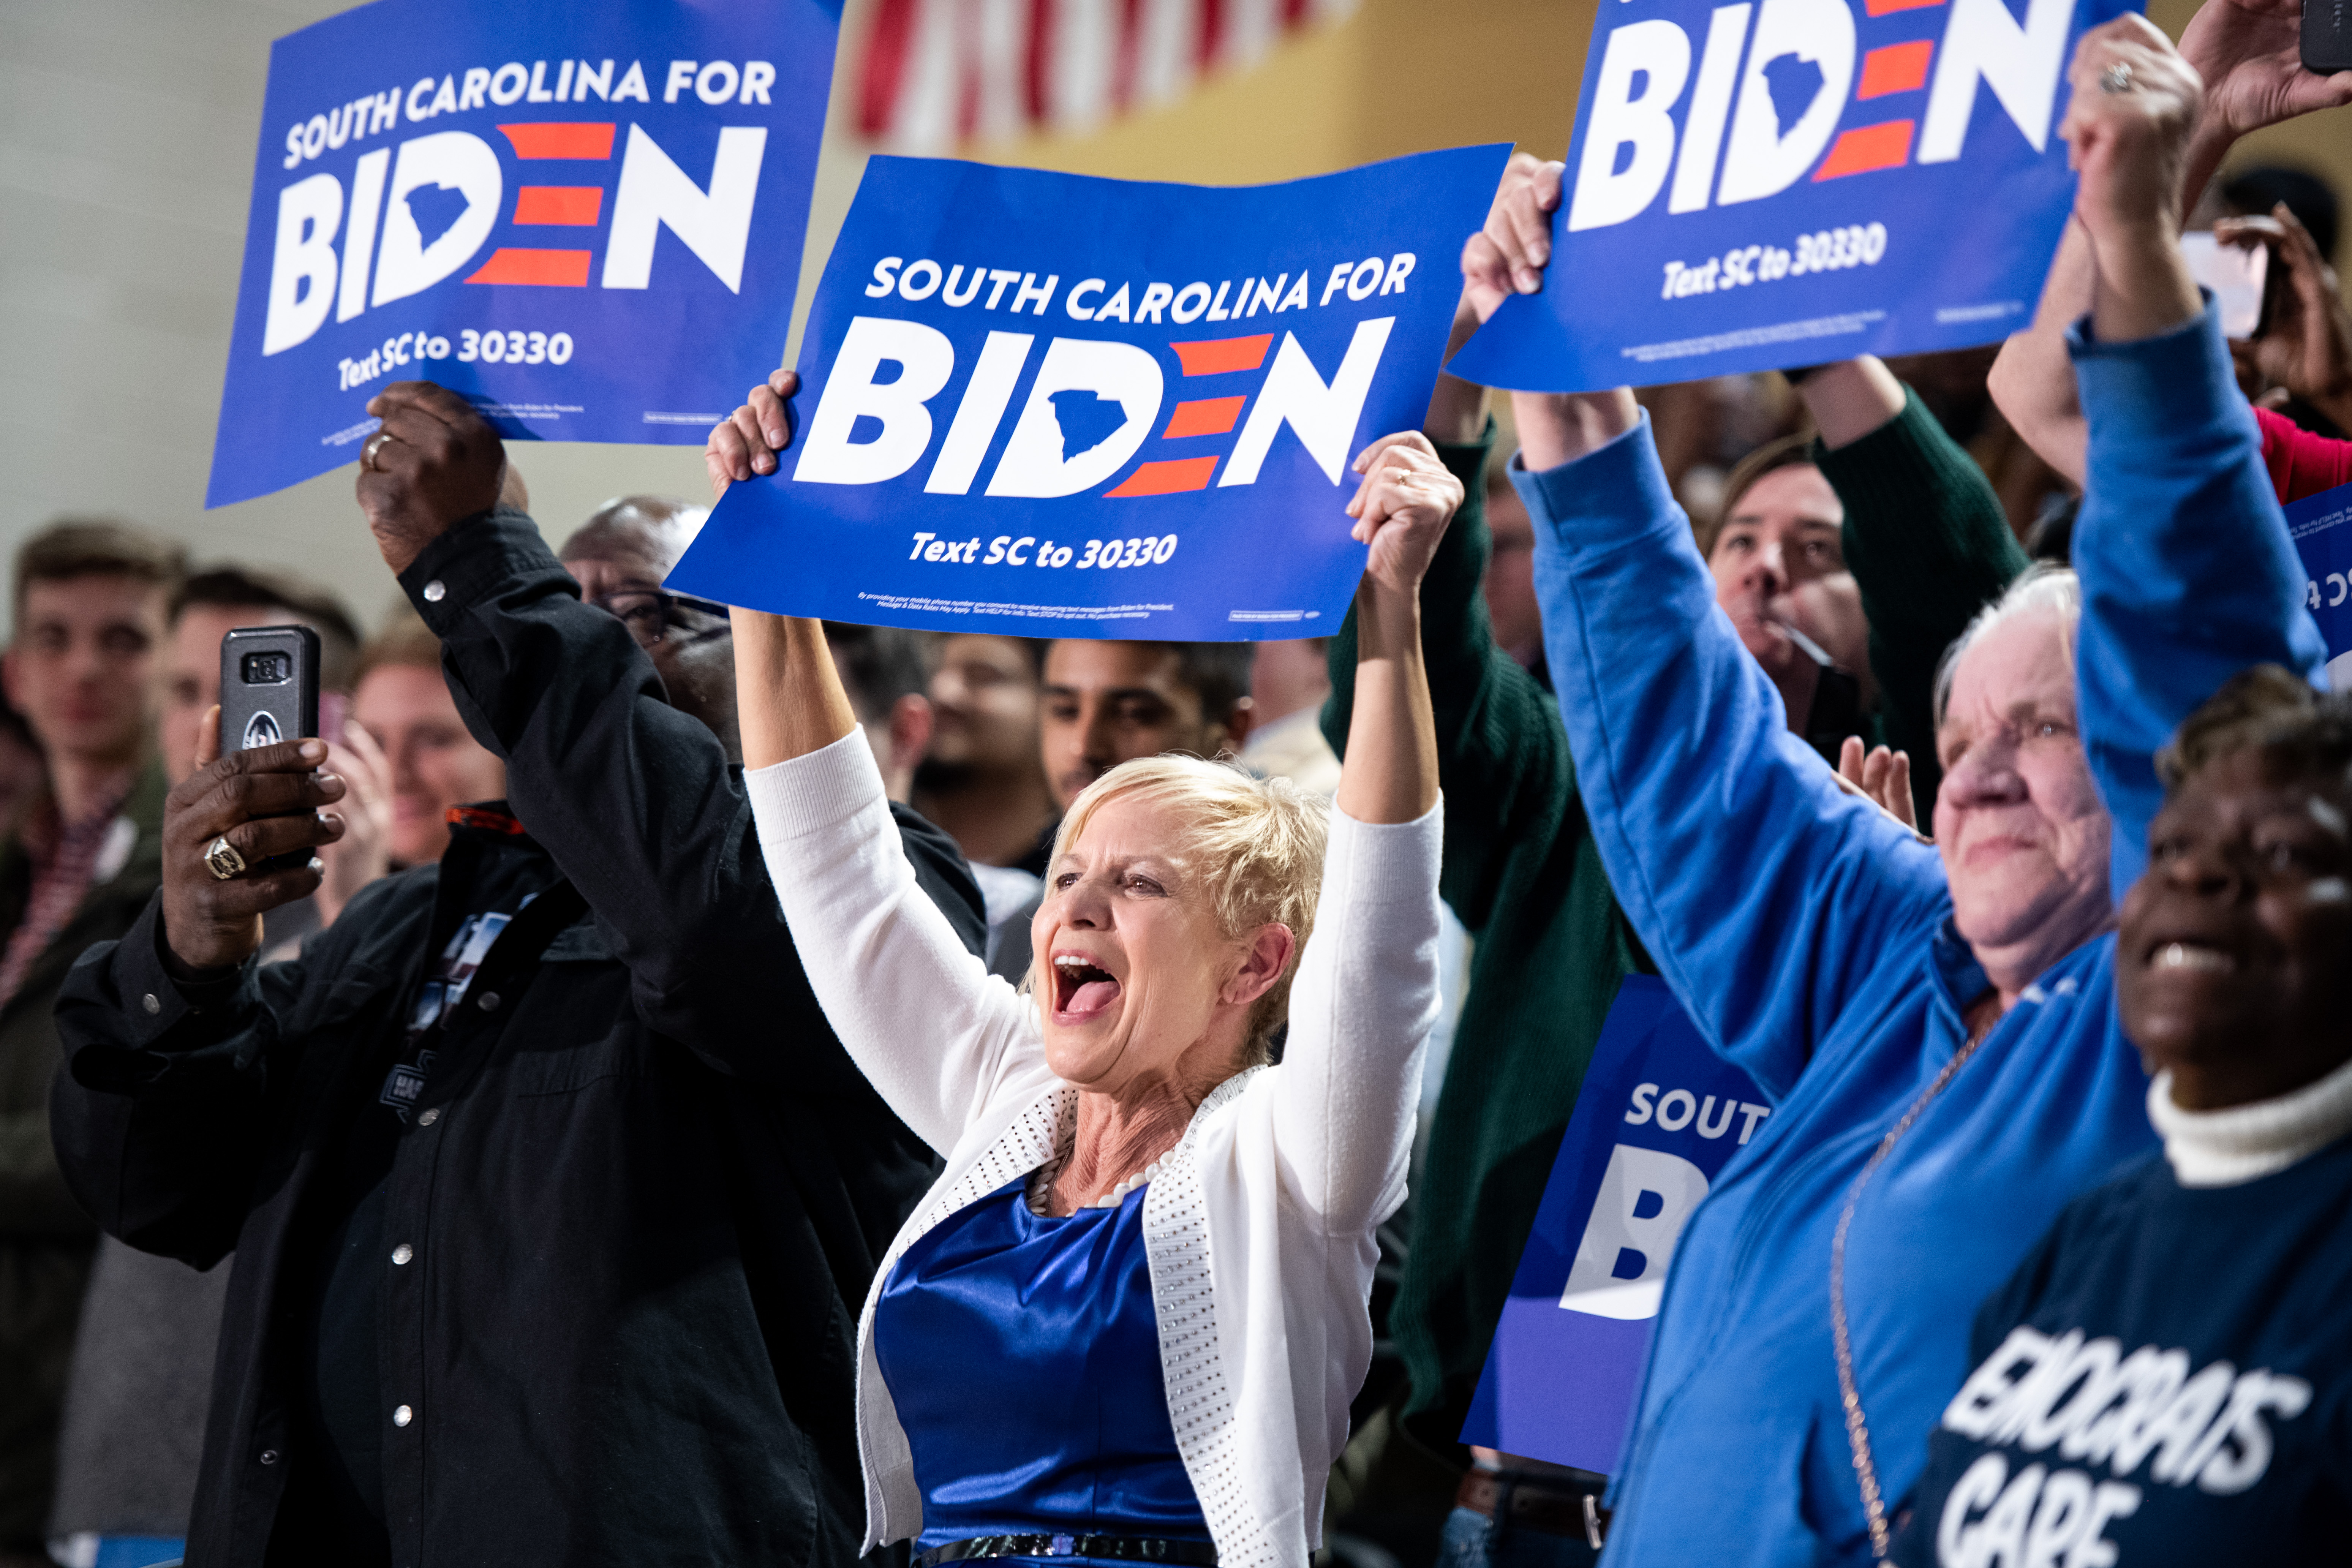 SPARTANBURG, SC - FEBRUARY 28: Harriett Phillips (C) cheers for Democratic presidential candidate former Vice President Joe Biden at Wofford University February 28, 2020 in Spartanburg, South Carolina. South Carolinians will vote in the Democratic presidential primary tomorrow. (Photo by Sean Rayford/Getty Images)